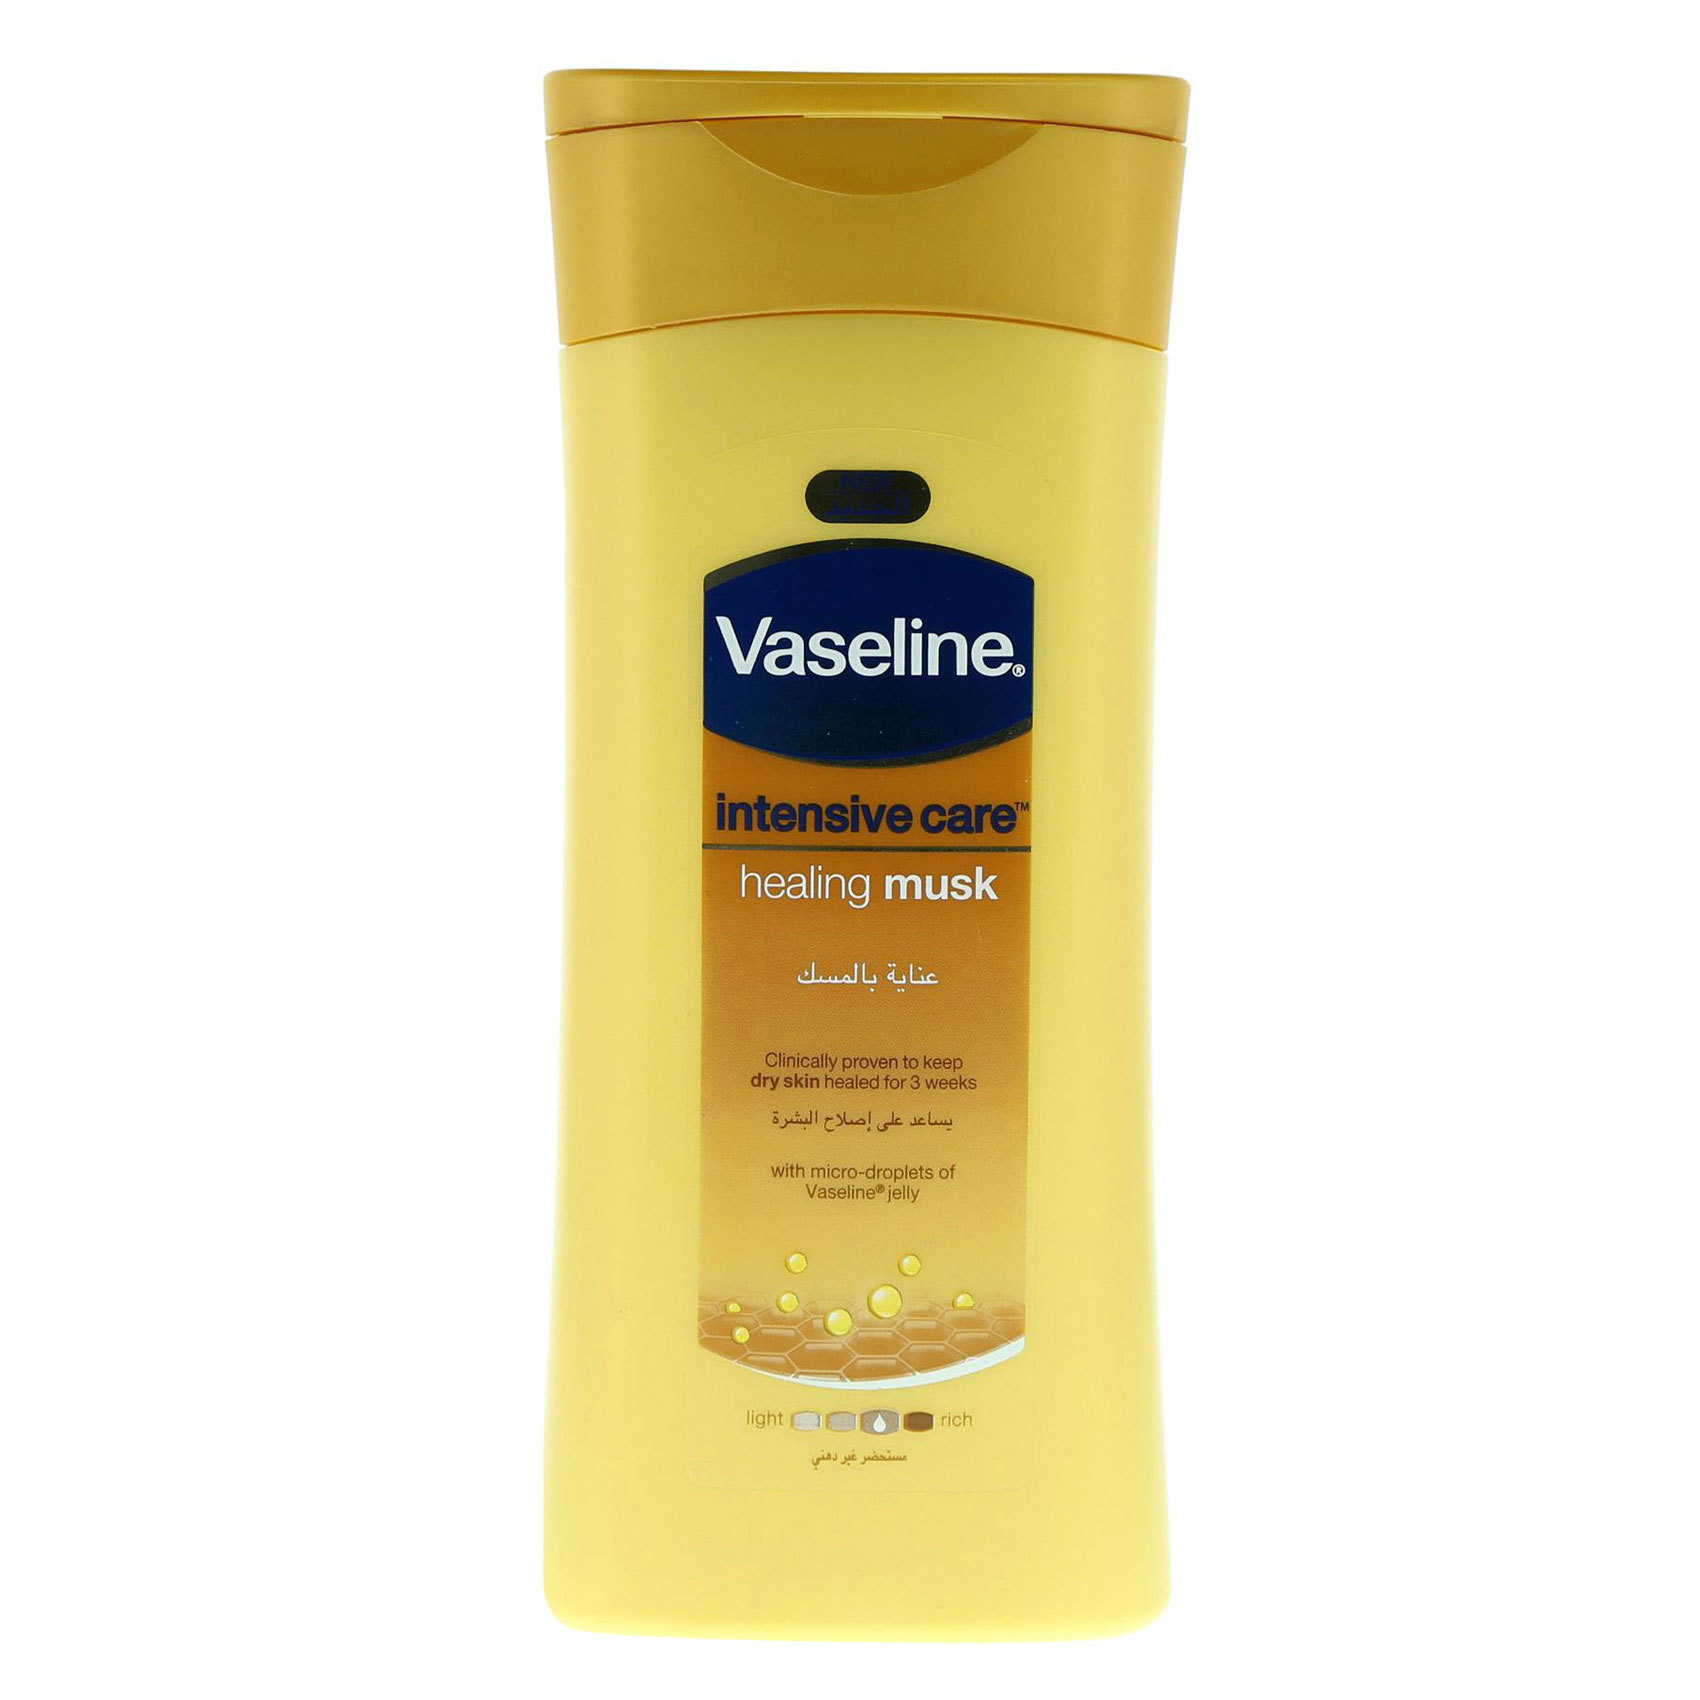 VASELINE LOT VELVET MUSK 200ML